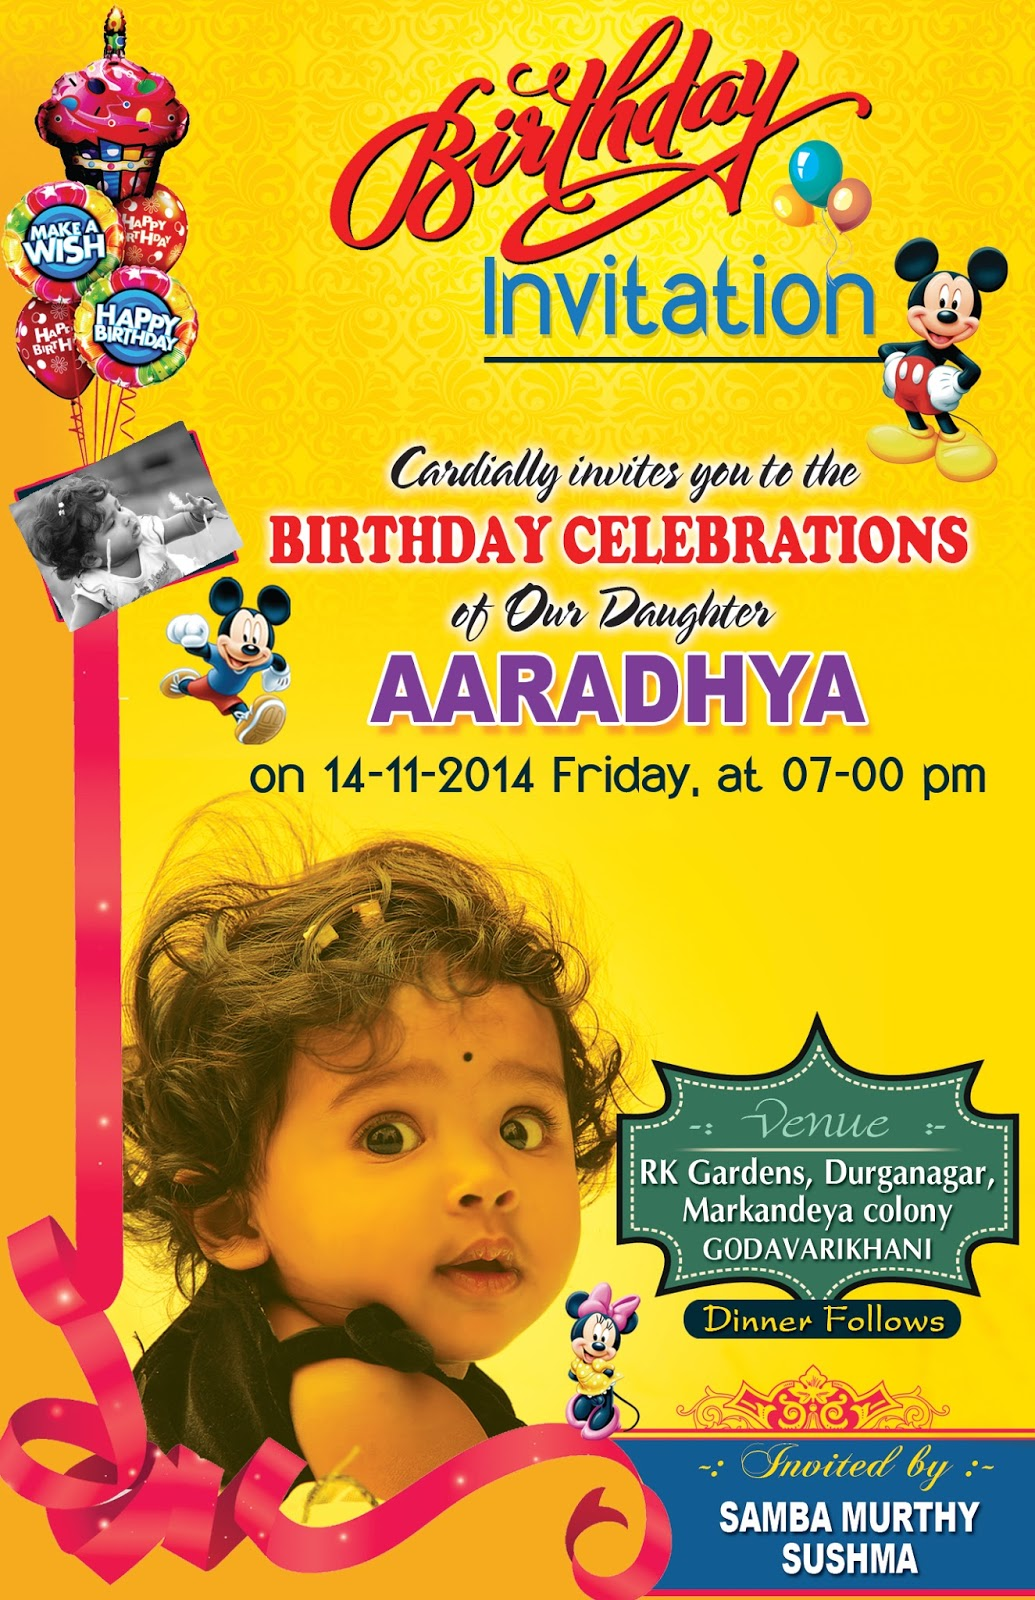 birthday invitation card design free download ; birthday-invitation-card-psd-template-free